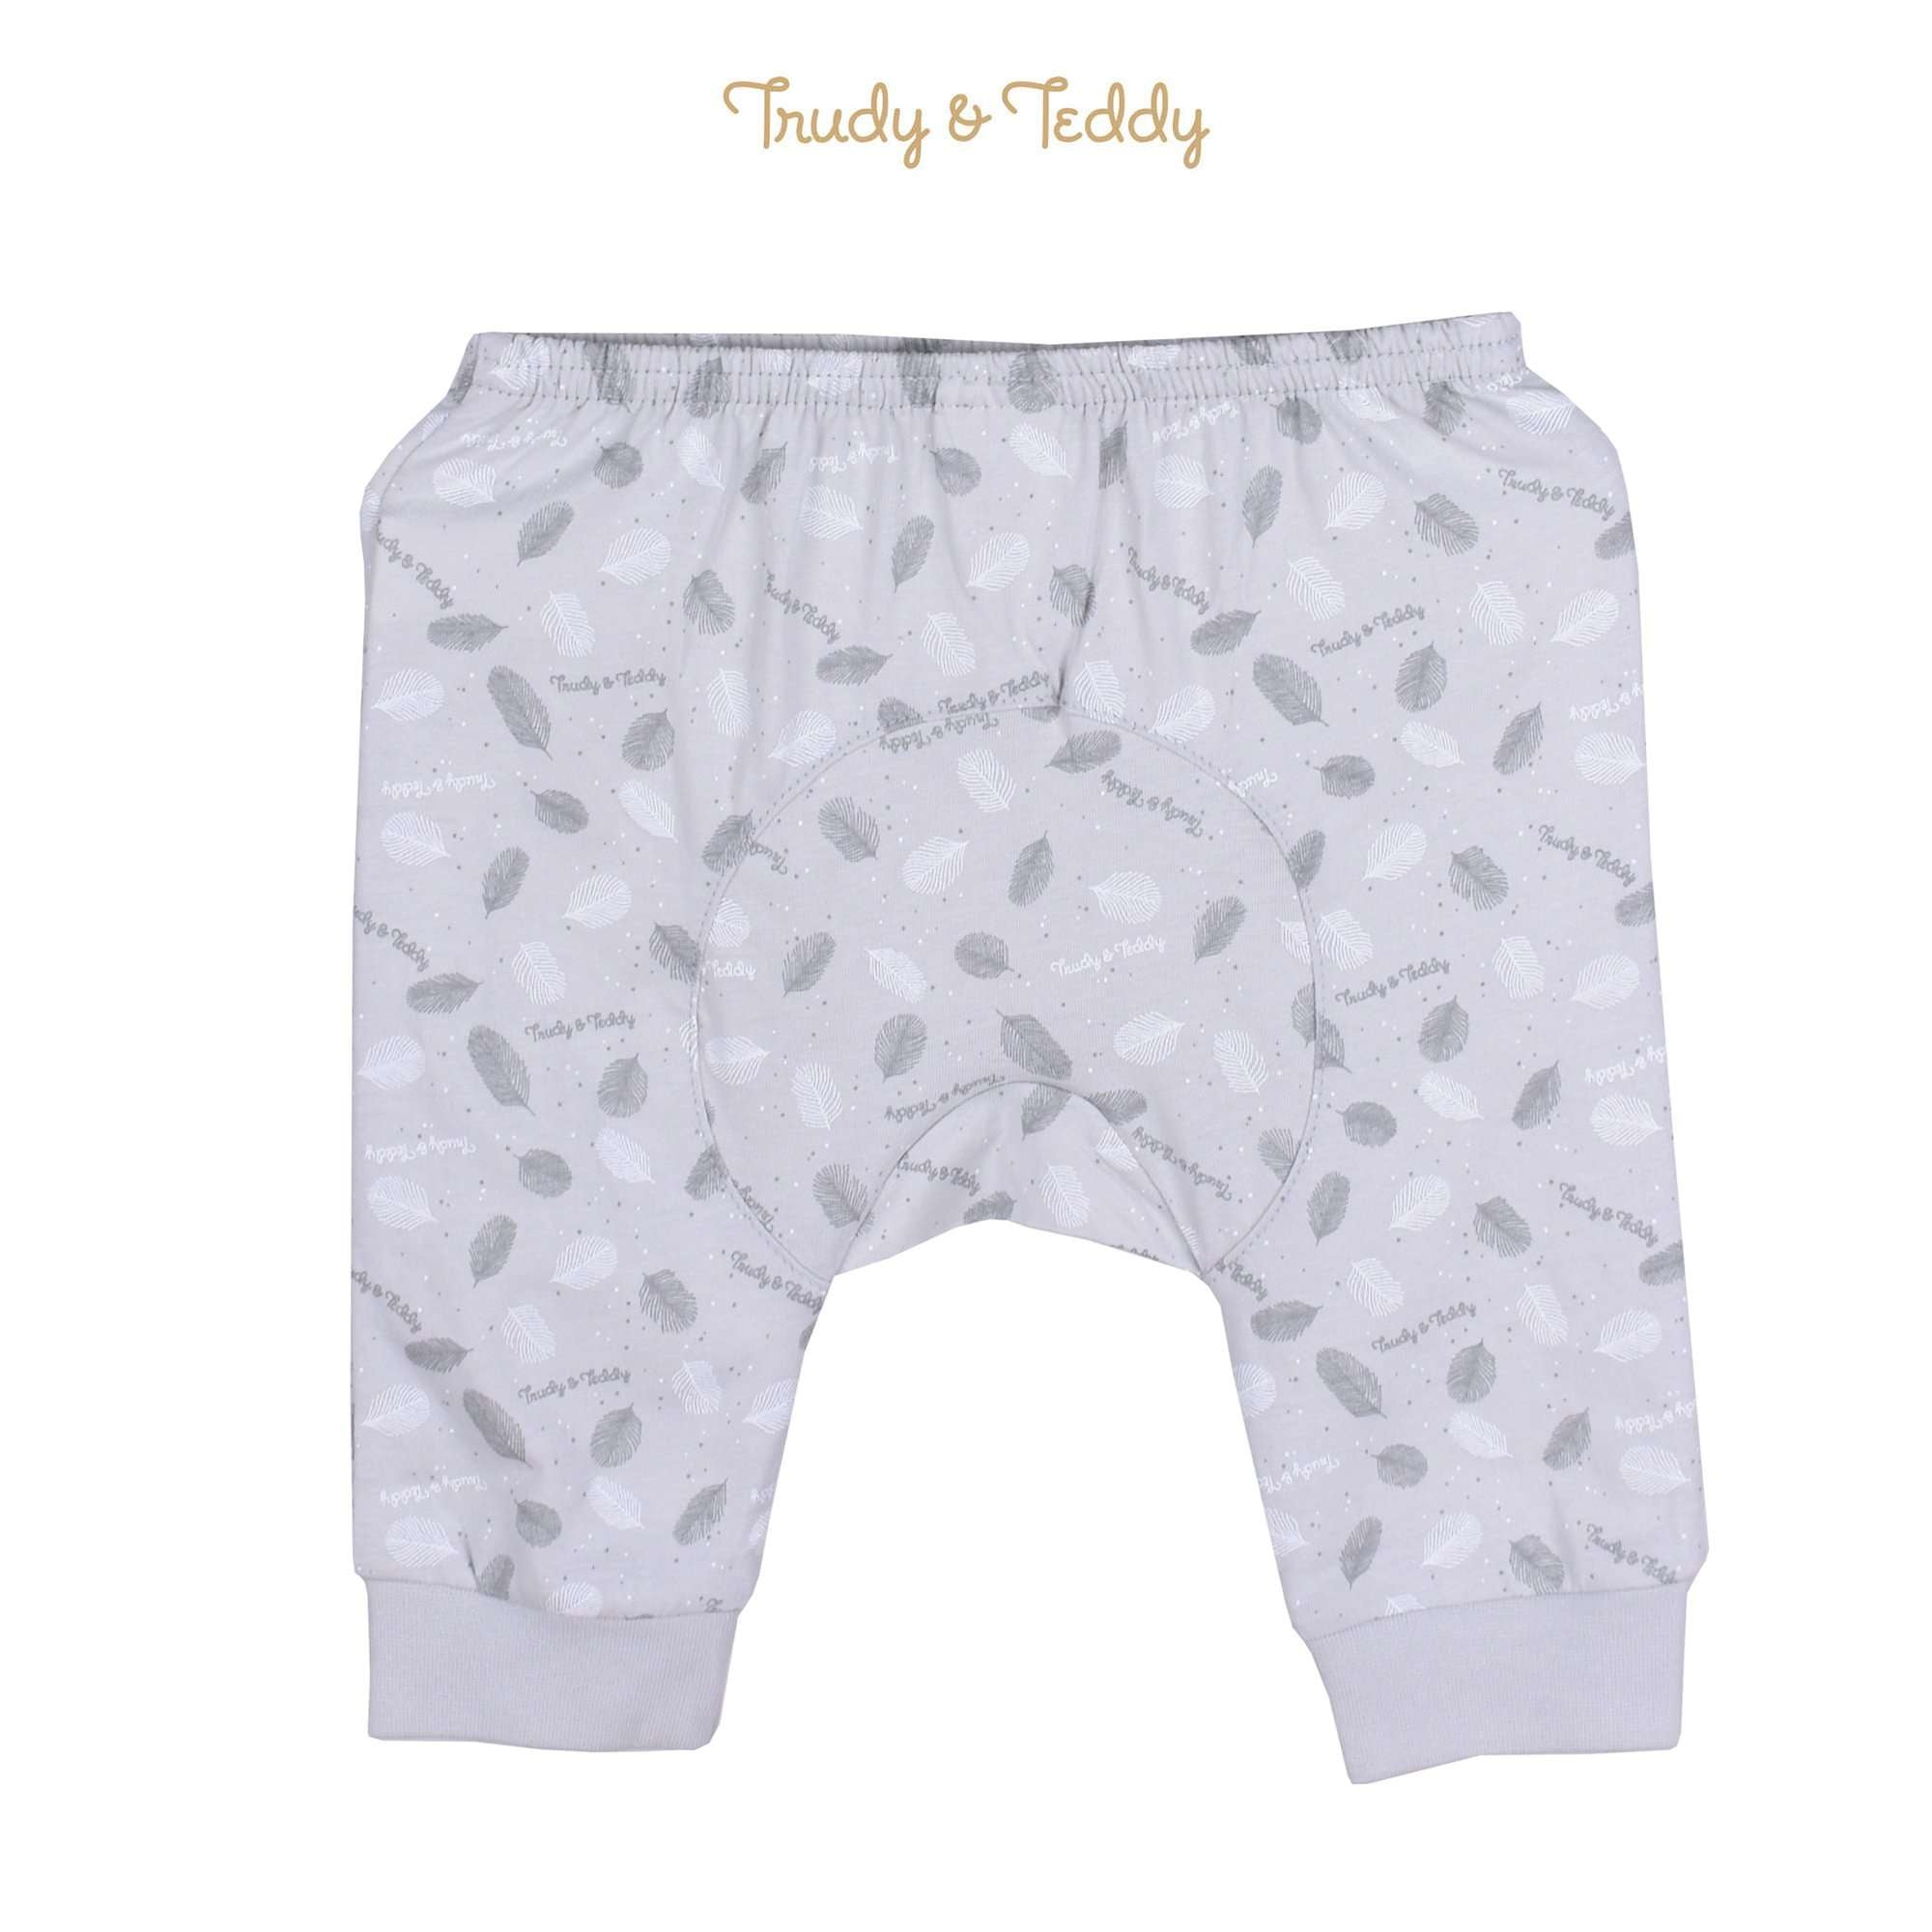 Trudy & Teddy Baby Boy Long Sleeve Long Pants Suit 820029-431 : Buy Trudy & Teddy online at CMG.MY